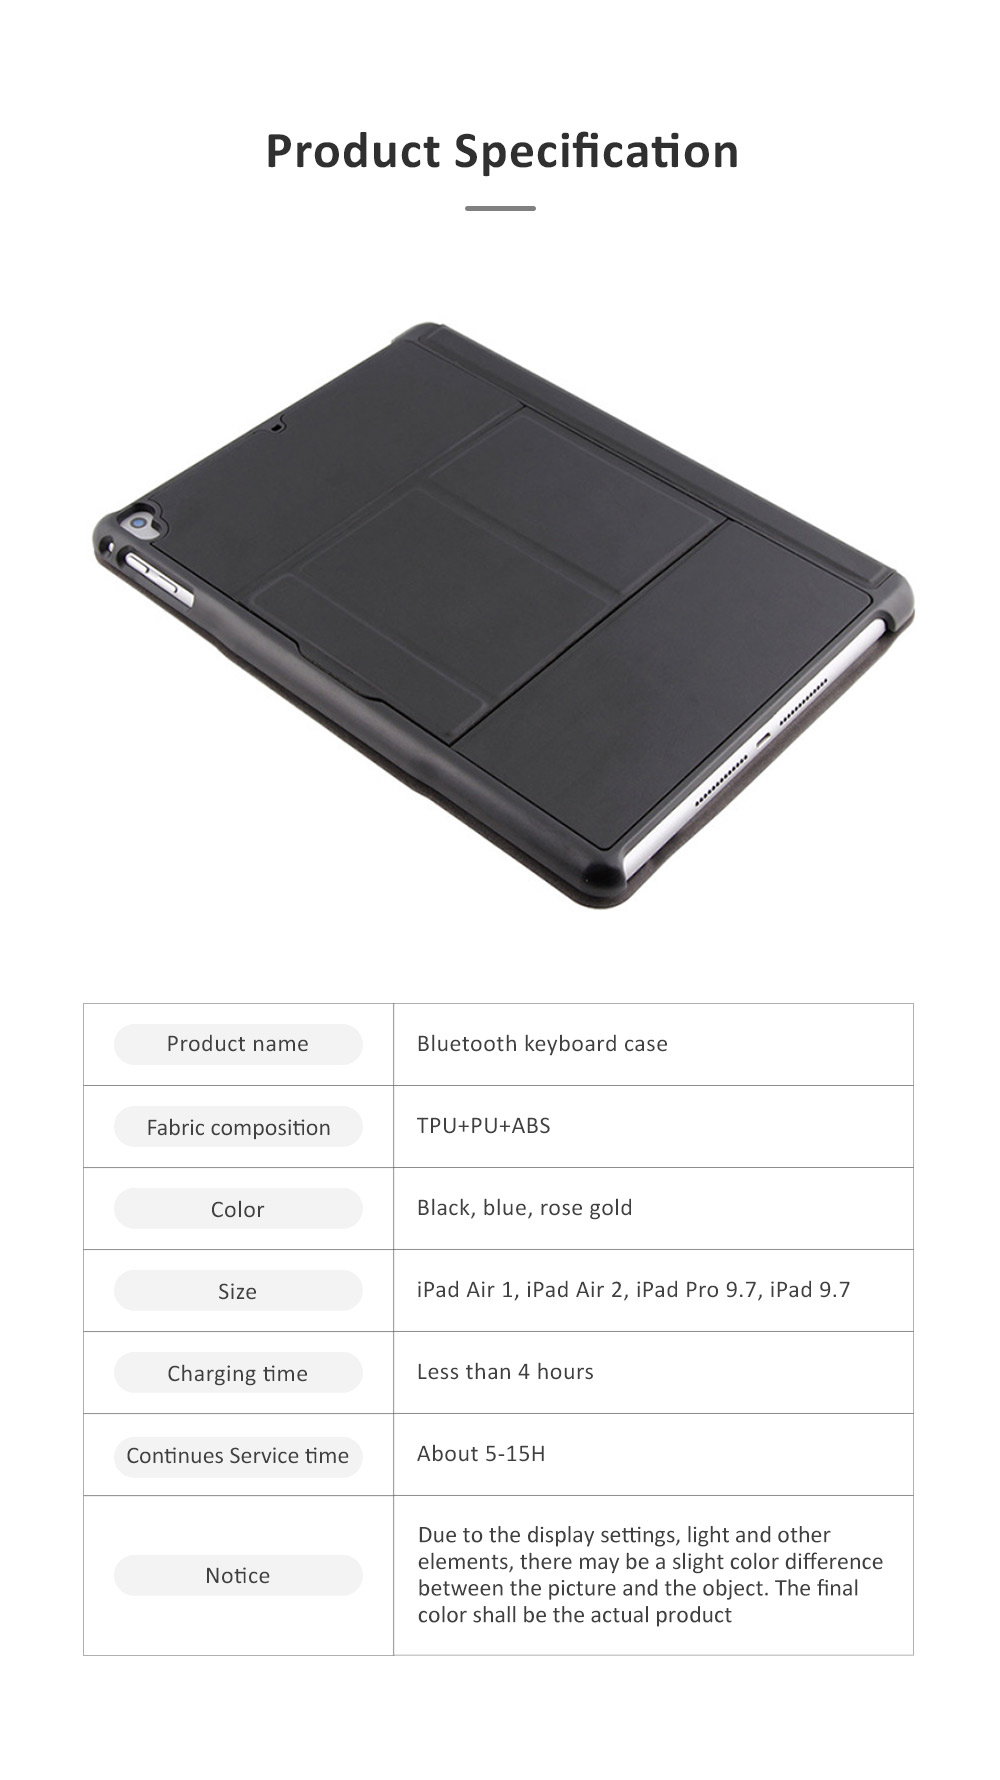 Bluetooth Keyboard Magnetic Flip Case for iPad Air 1, iPad Air 2, iPad Pro 9.7, iPad 9.7 2018, iPad 9.7 2017, Ultra- Thin Split Type New iPad 9.7 Colorful Backlit External Bluetooth Protective Cove 5